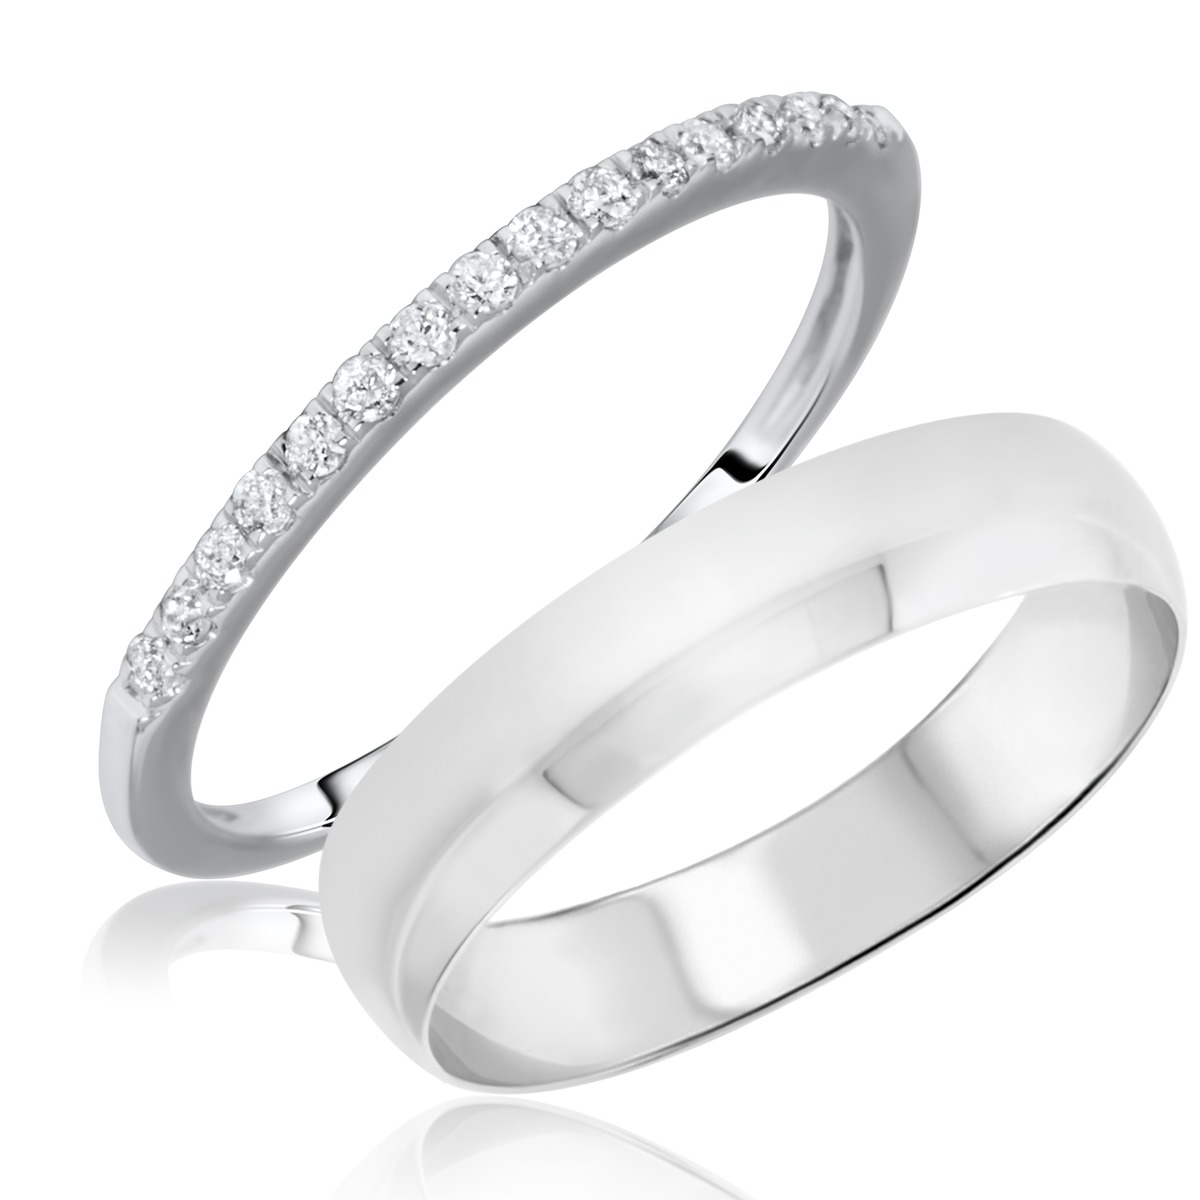 1/6 Carat T.W. Round Cut Diamond His and Hers Wedding Band Set 10K White Gold